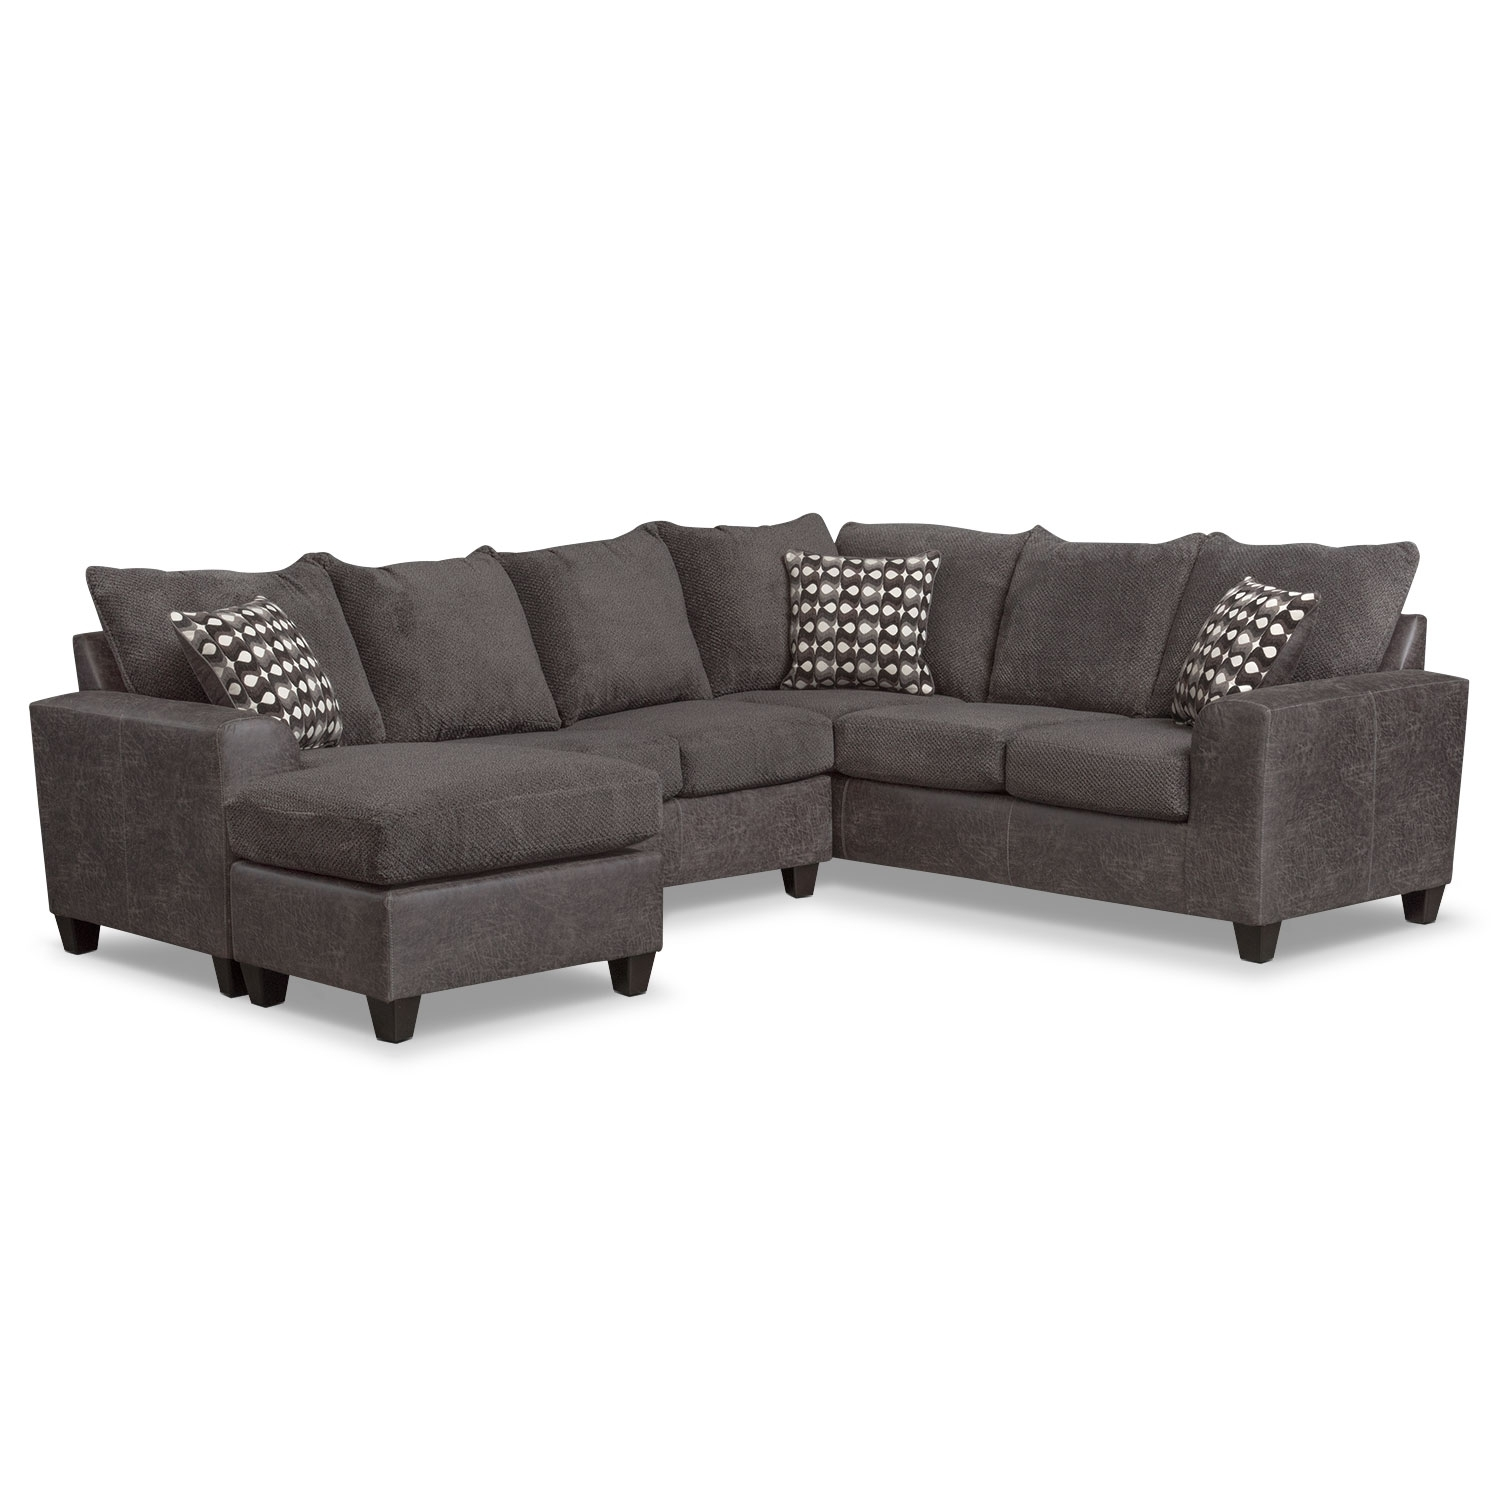 Brando 3-Piece Sectional With Modular Chaise - Smoke | Value City with regard to Cosmos Grey 2 Piece Sectionals With Laf Chaise (Image 4 of 30)